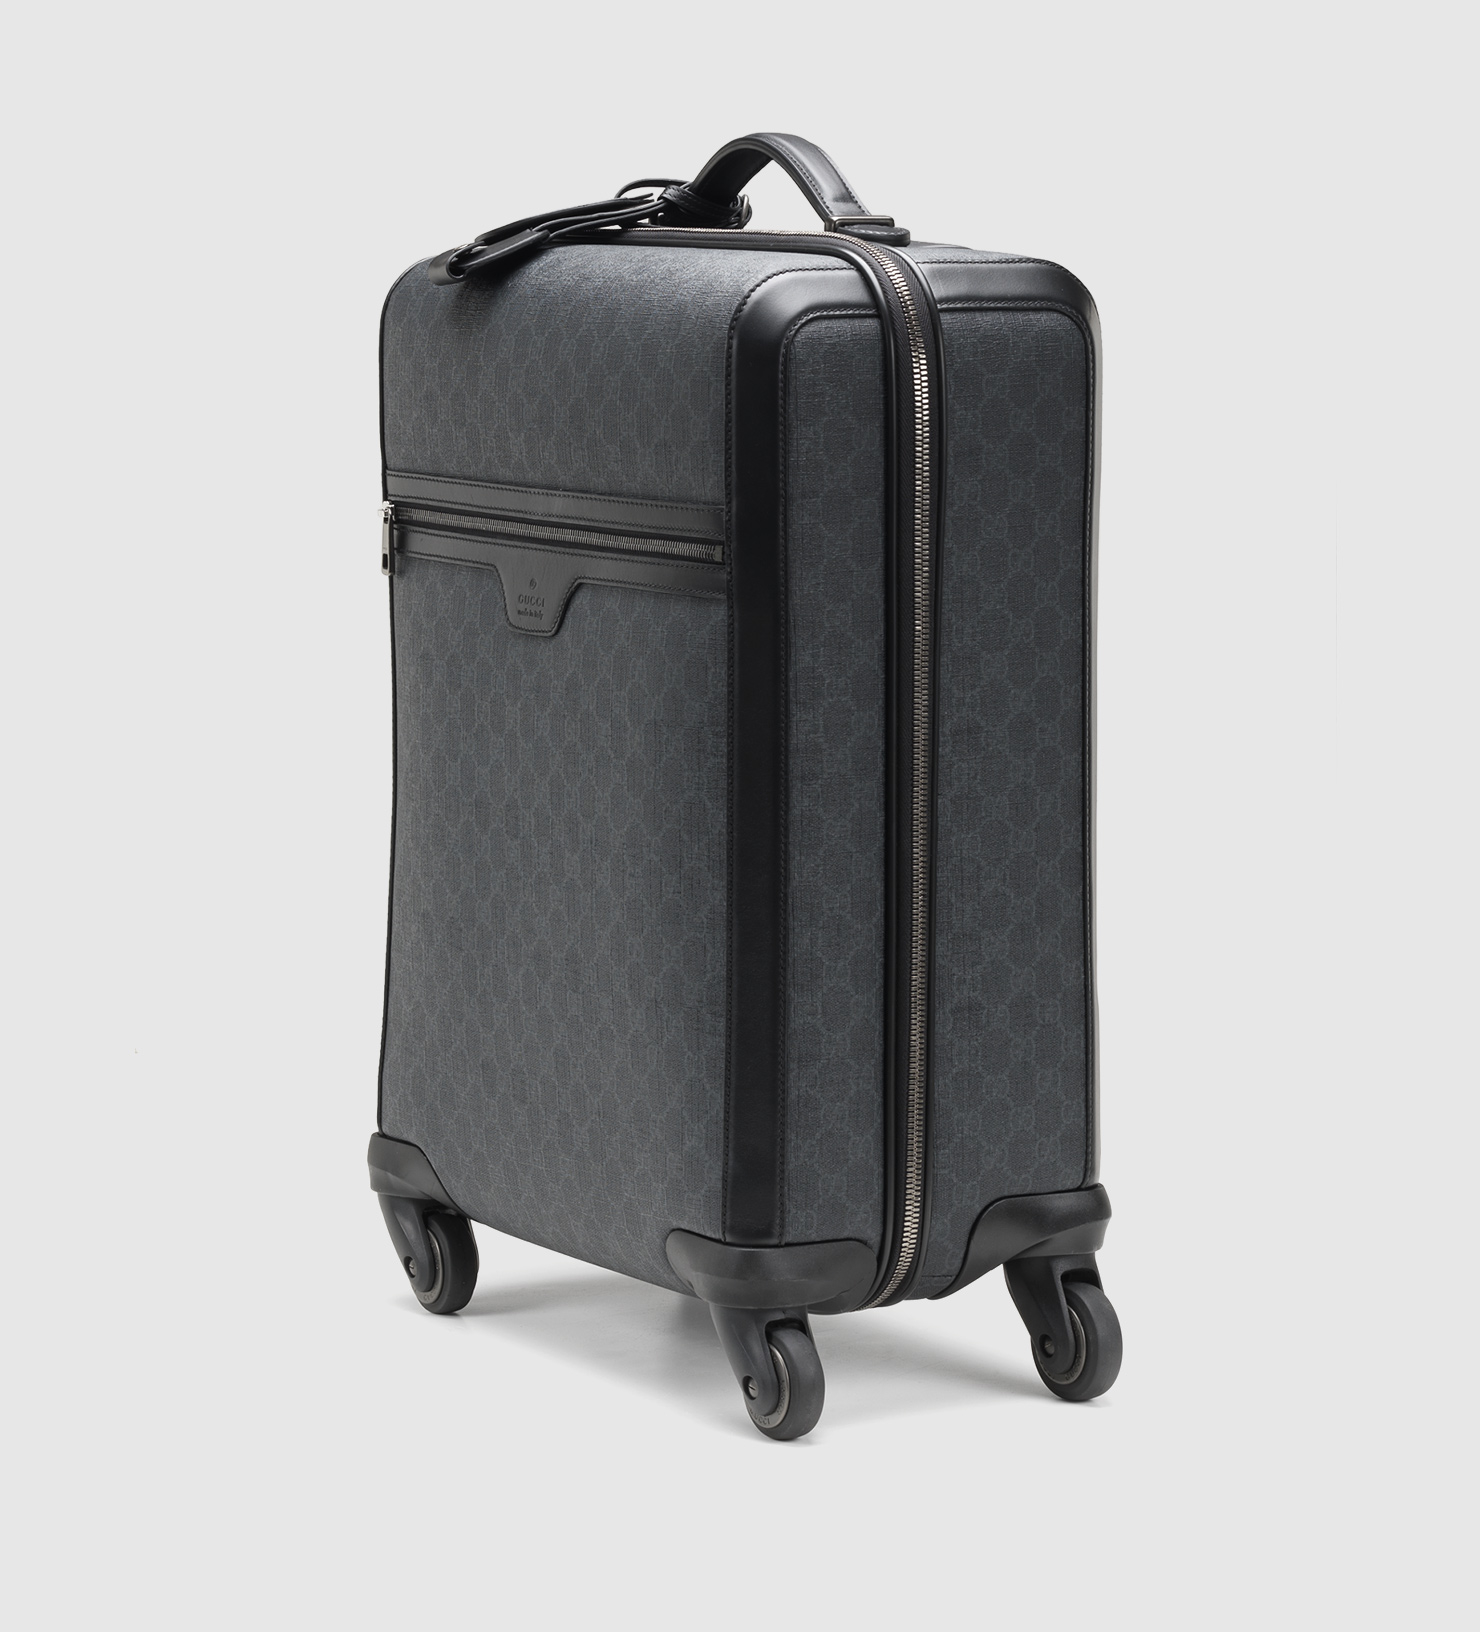 19aacc184e4c Lyst - Gucci Gg Supreme Canvas Wheeled Carry-on Suitcase in Black for Men